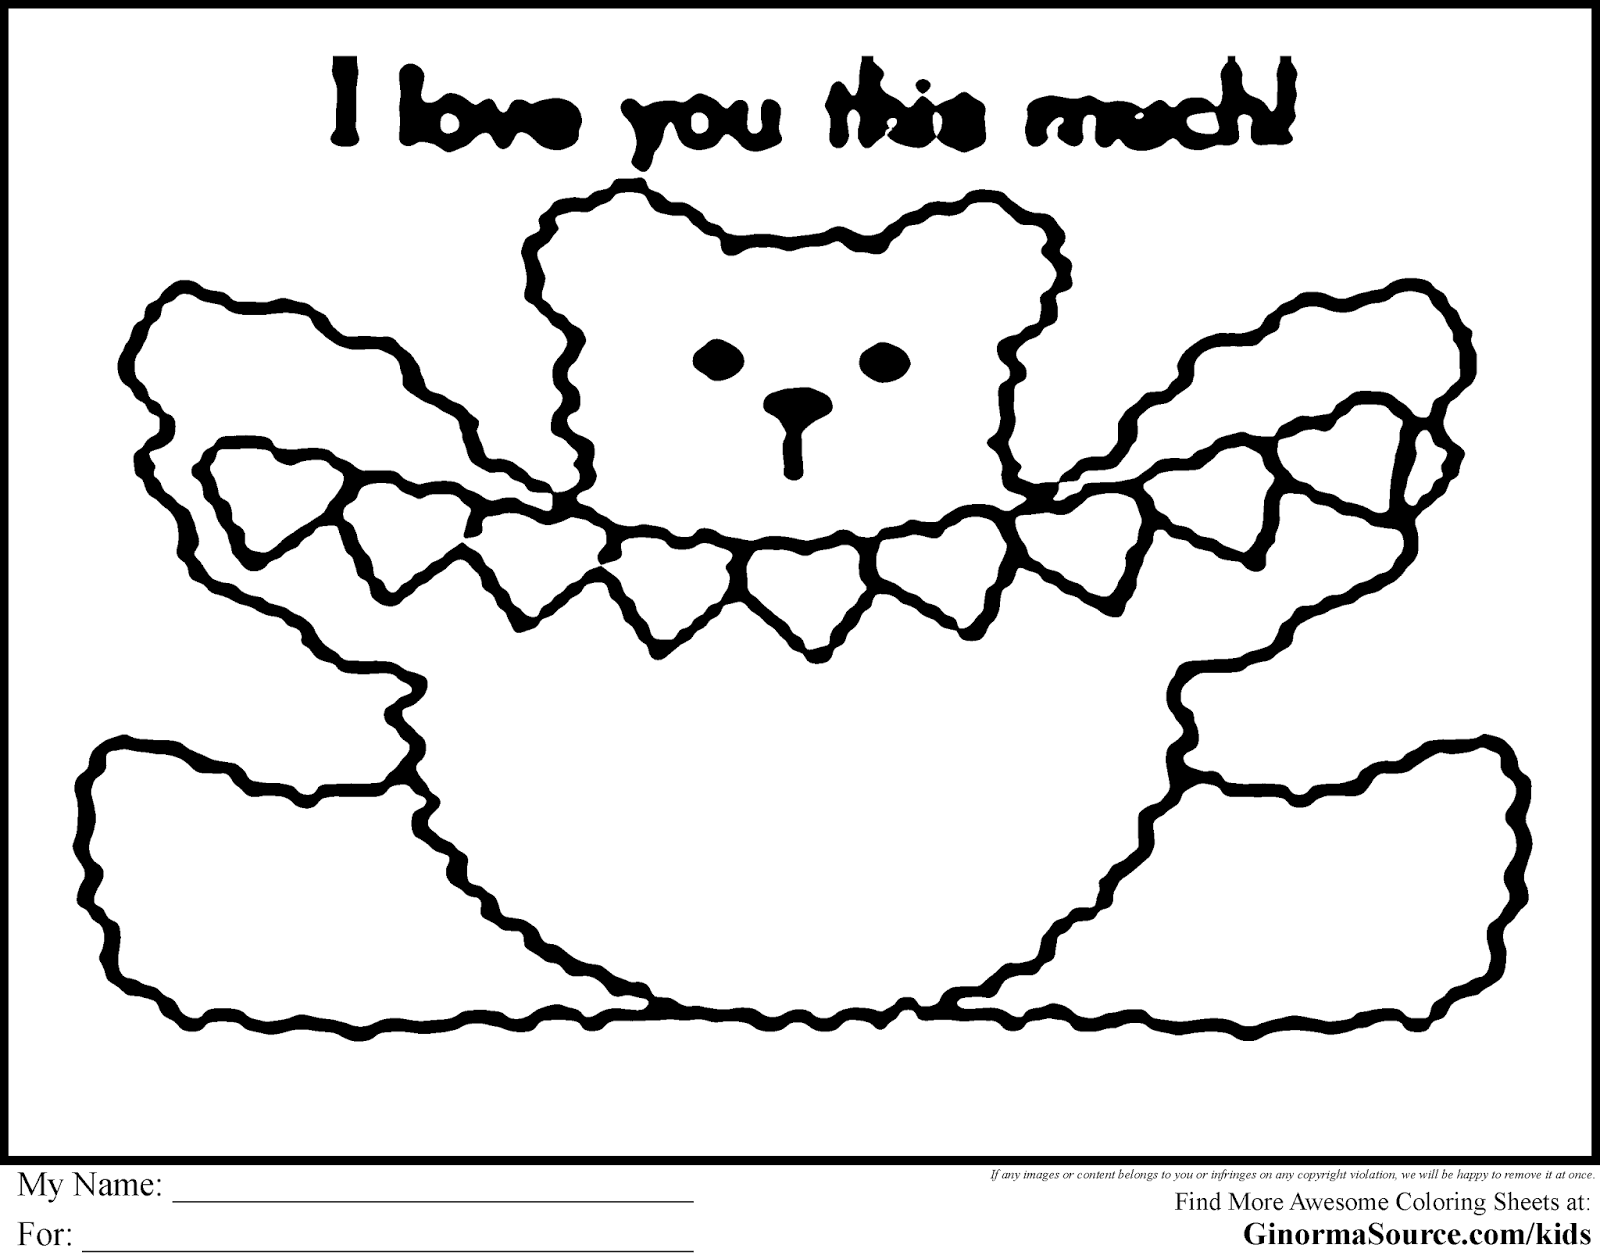 Coloring Pages: Cute and Easy Coloring Pages Free and